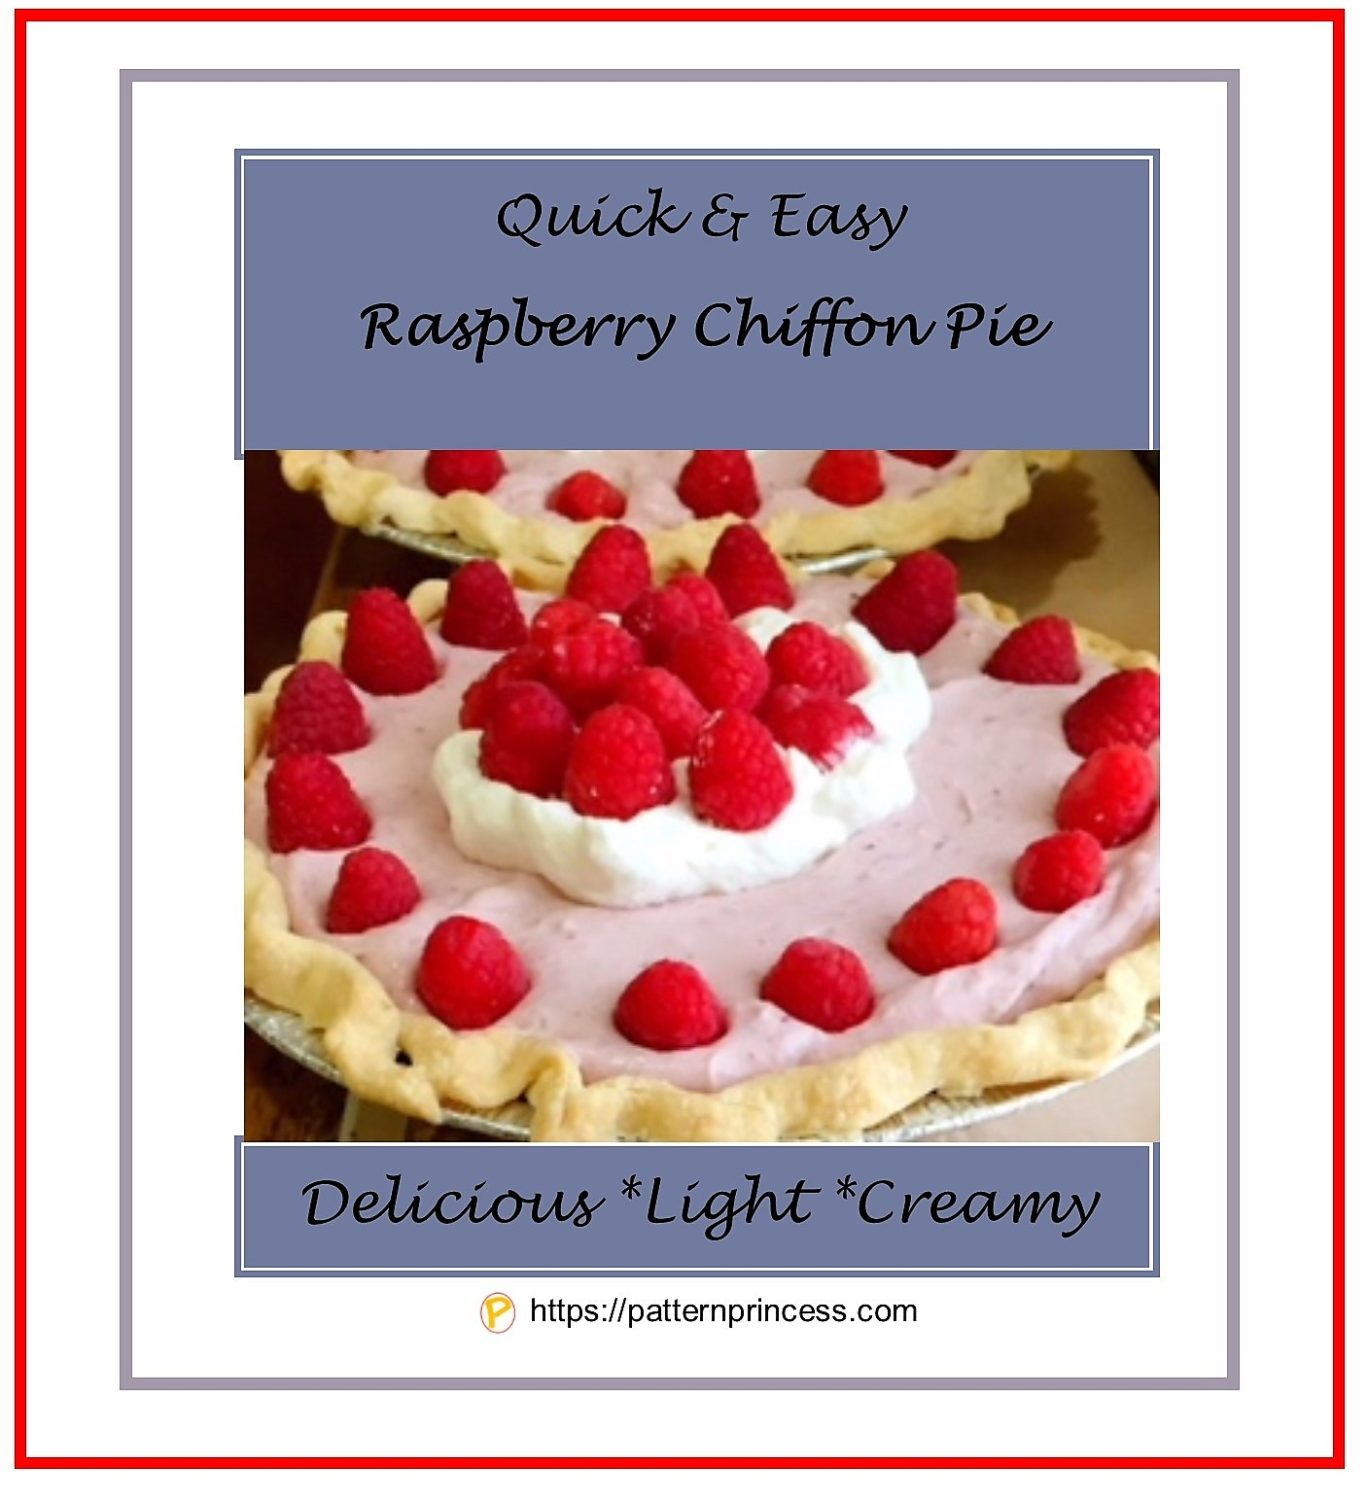 Quick and Easy Raspberry Chiffon Pie 1